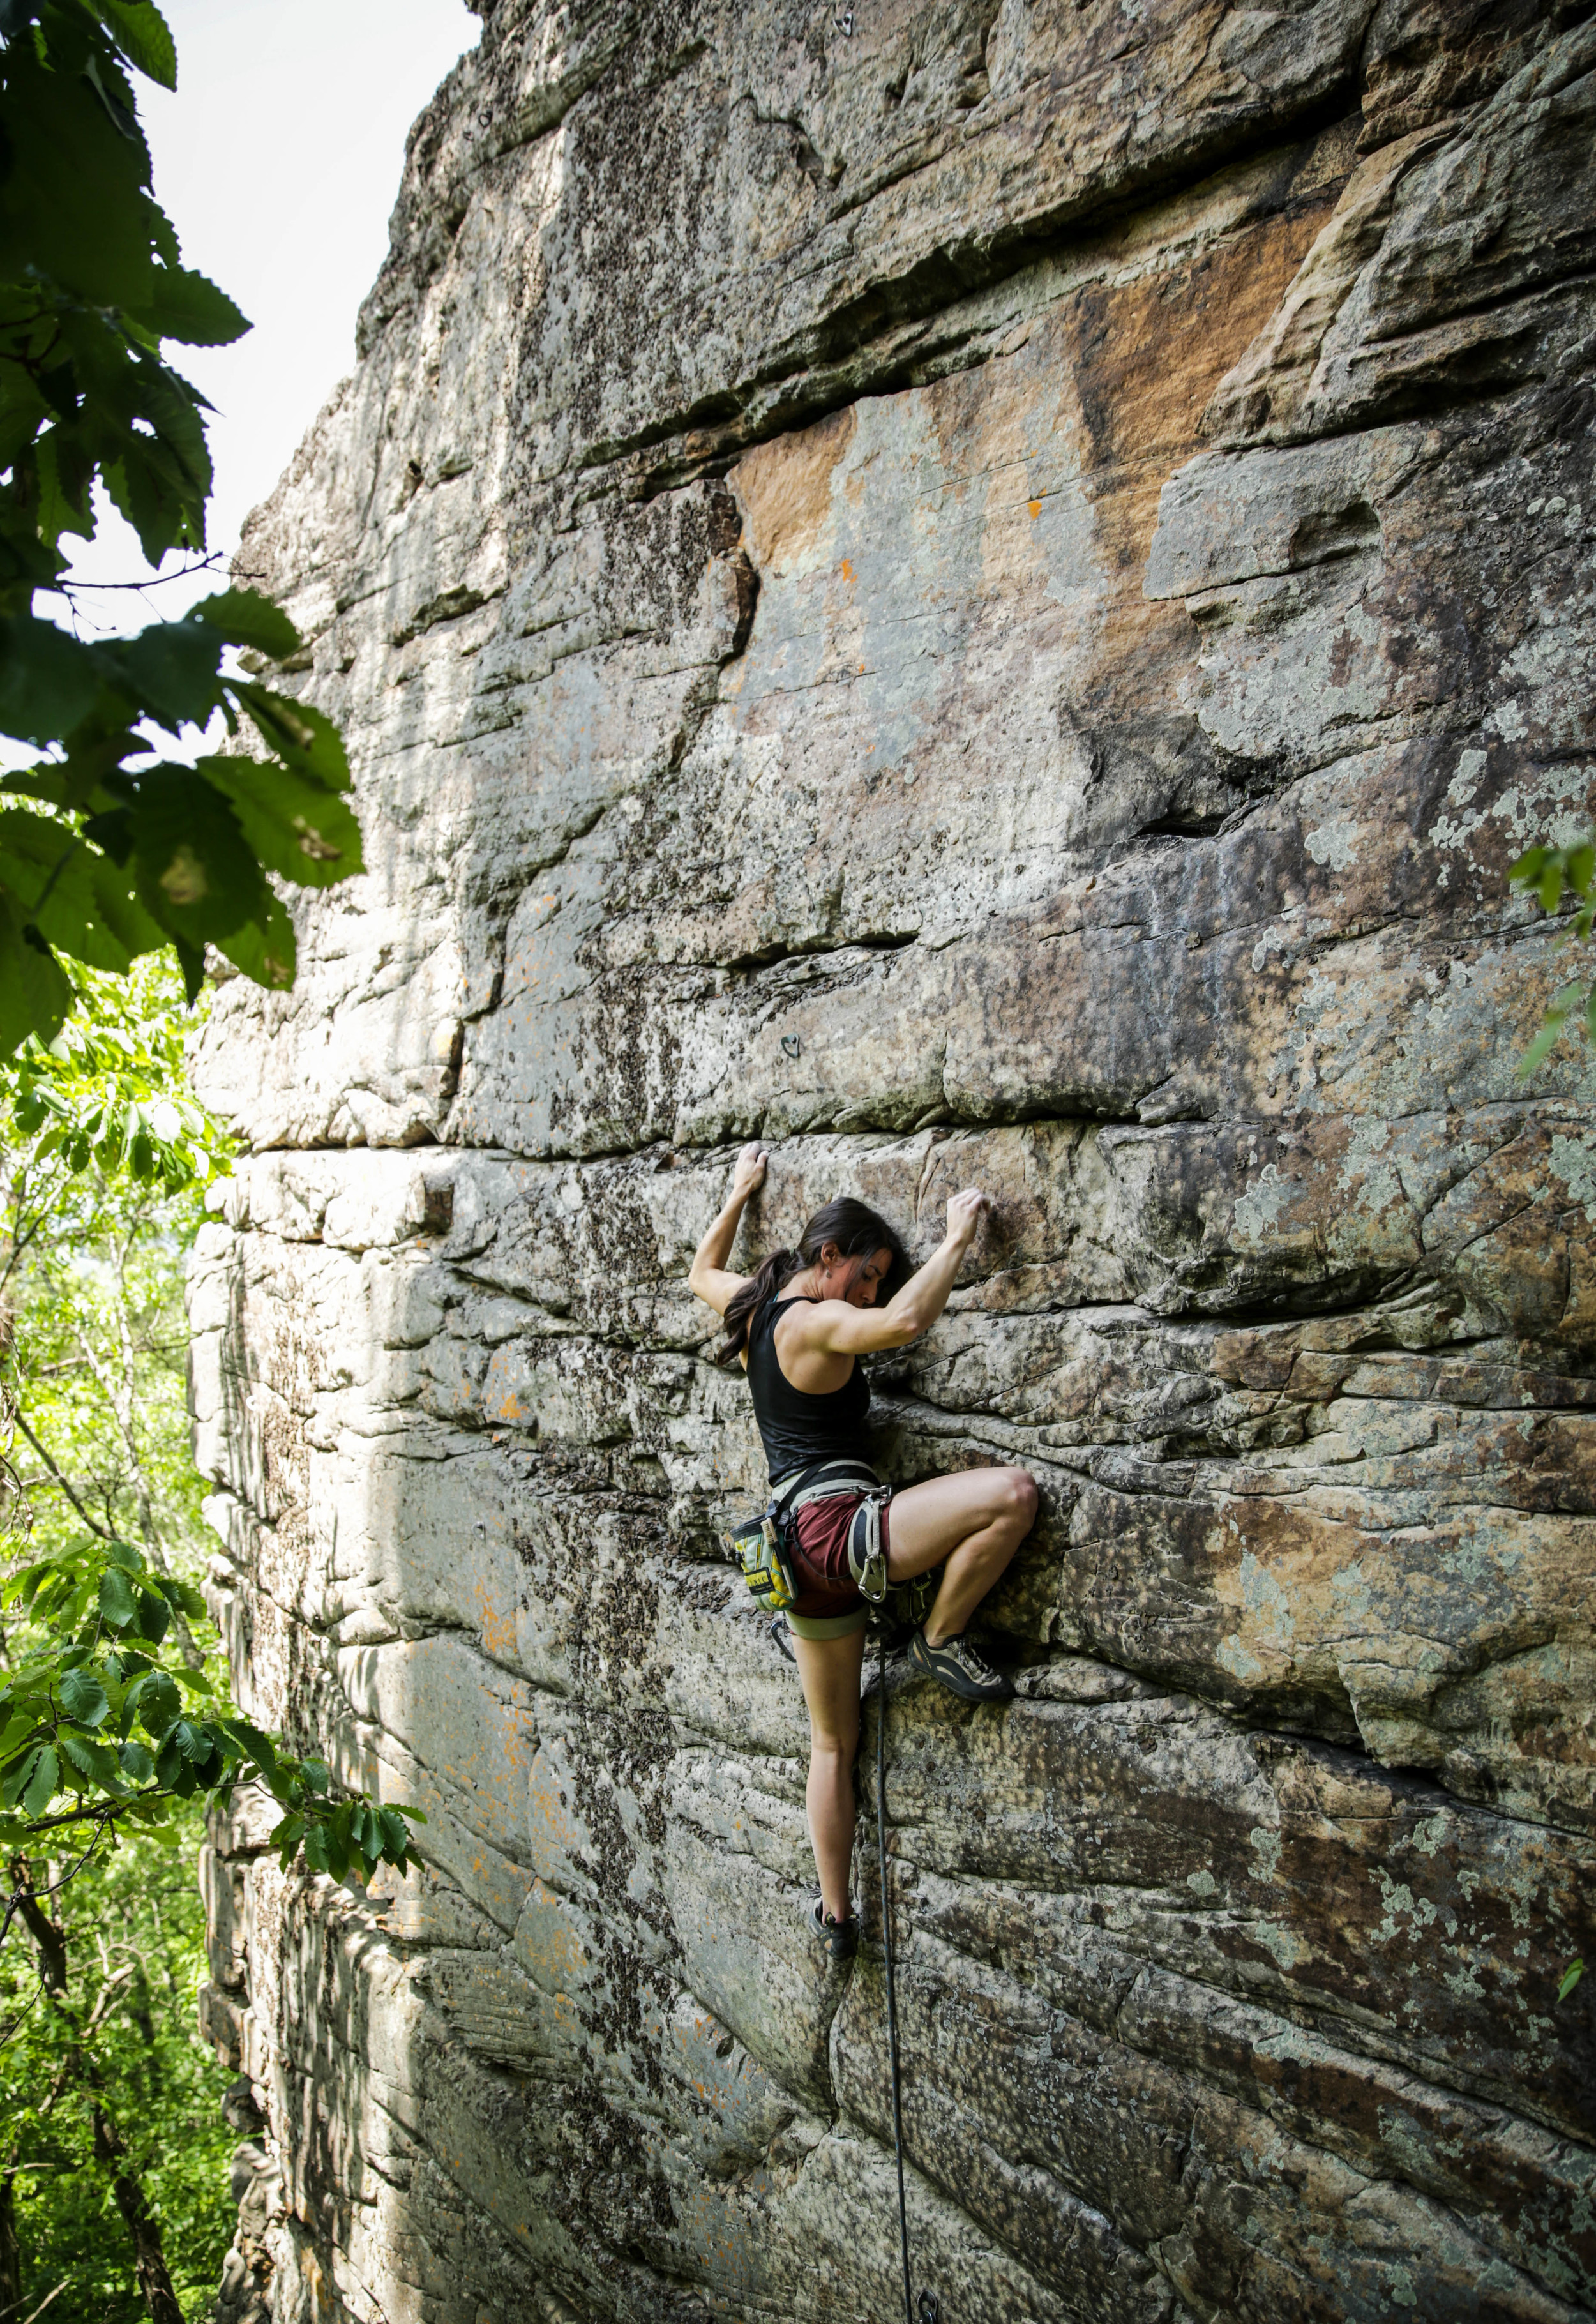 Kylie nearing the anchors on Breaking a Cold Sweat, 5.11+. Photo:  Gerry Seavo James